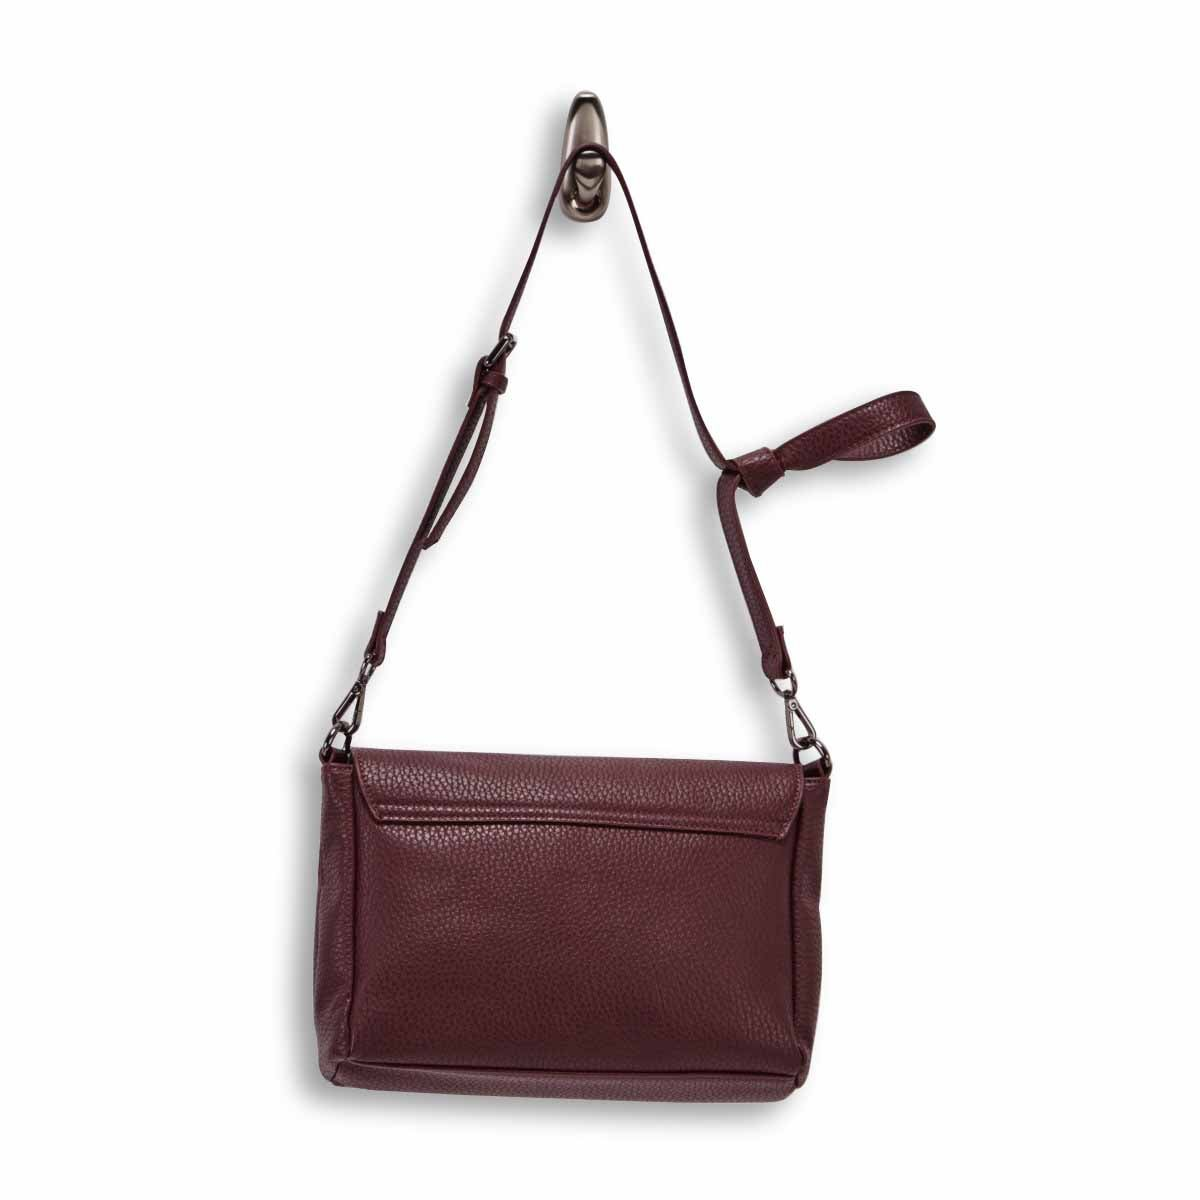 Lds wine messenger crossbody bag